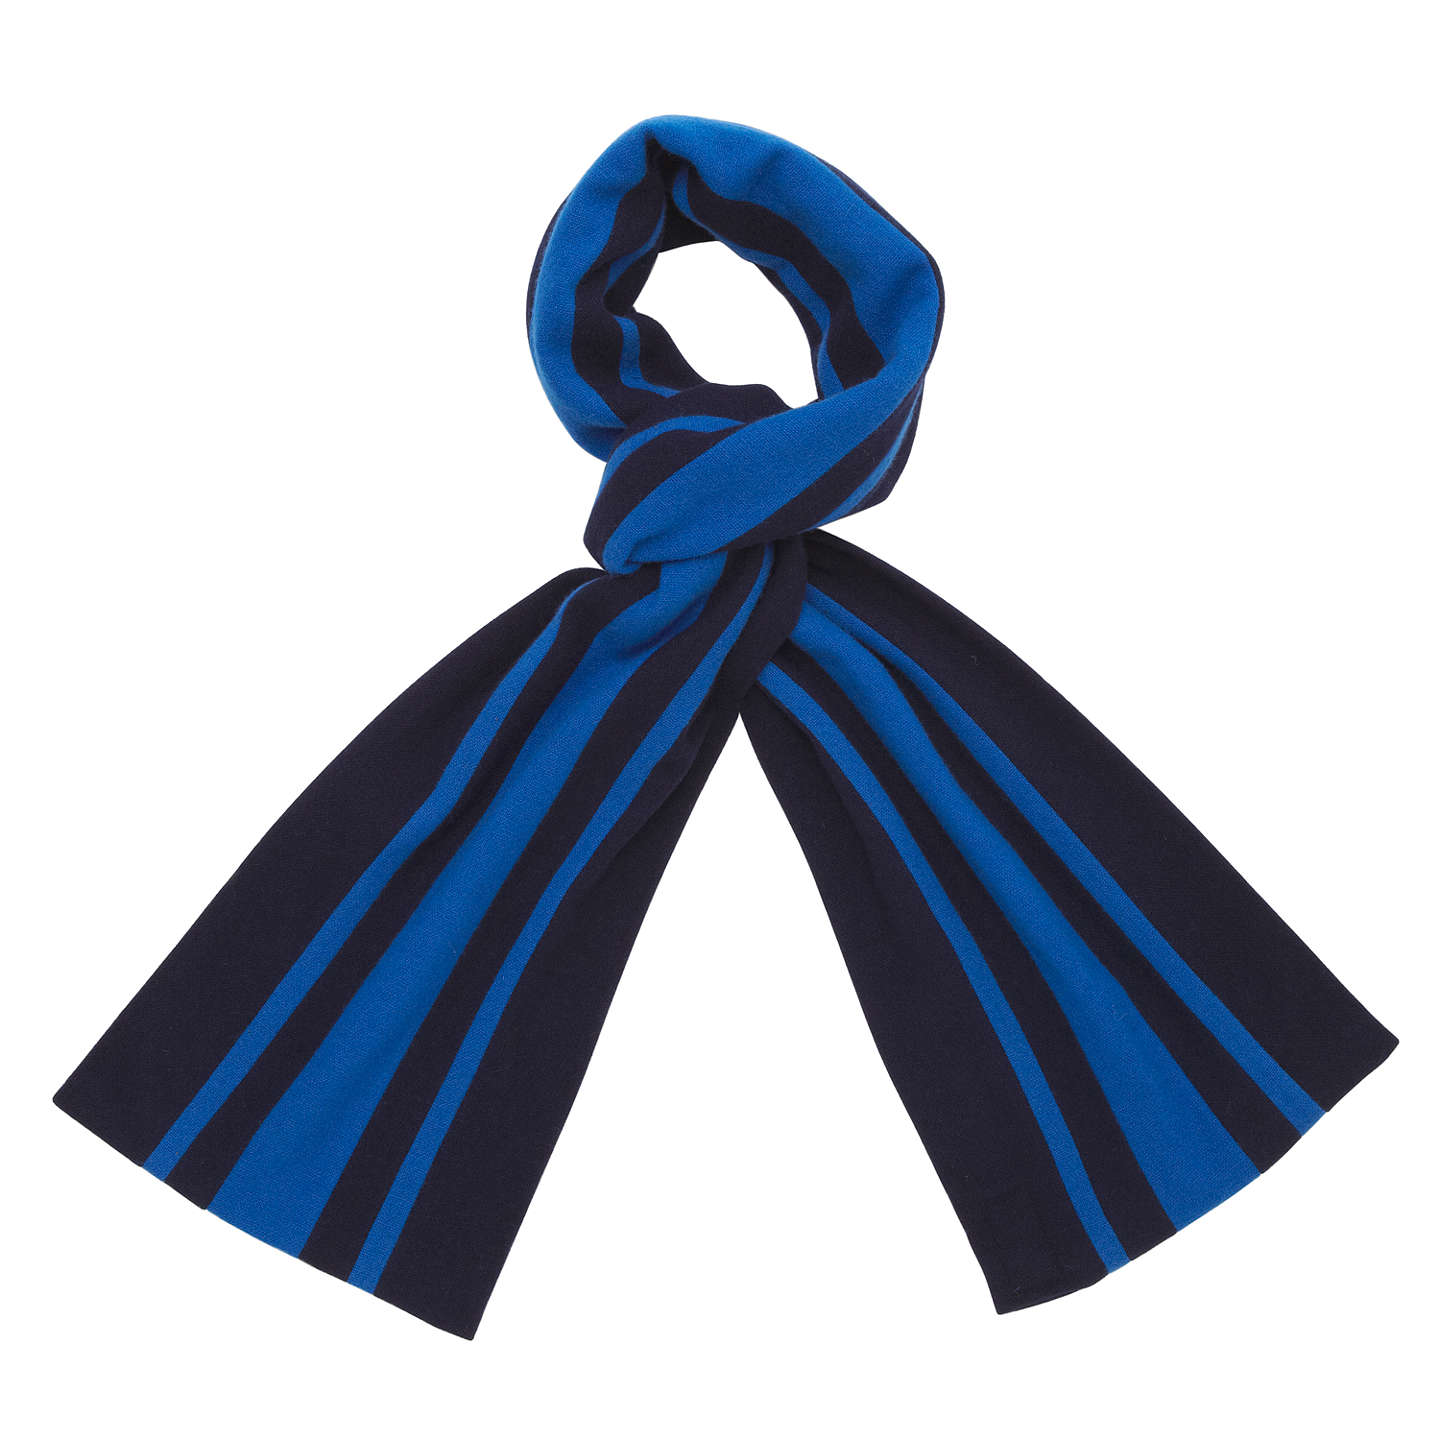 BuyChislehurst School for Girls Scarf, Navy, One Size Online at johnlewis.com